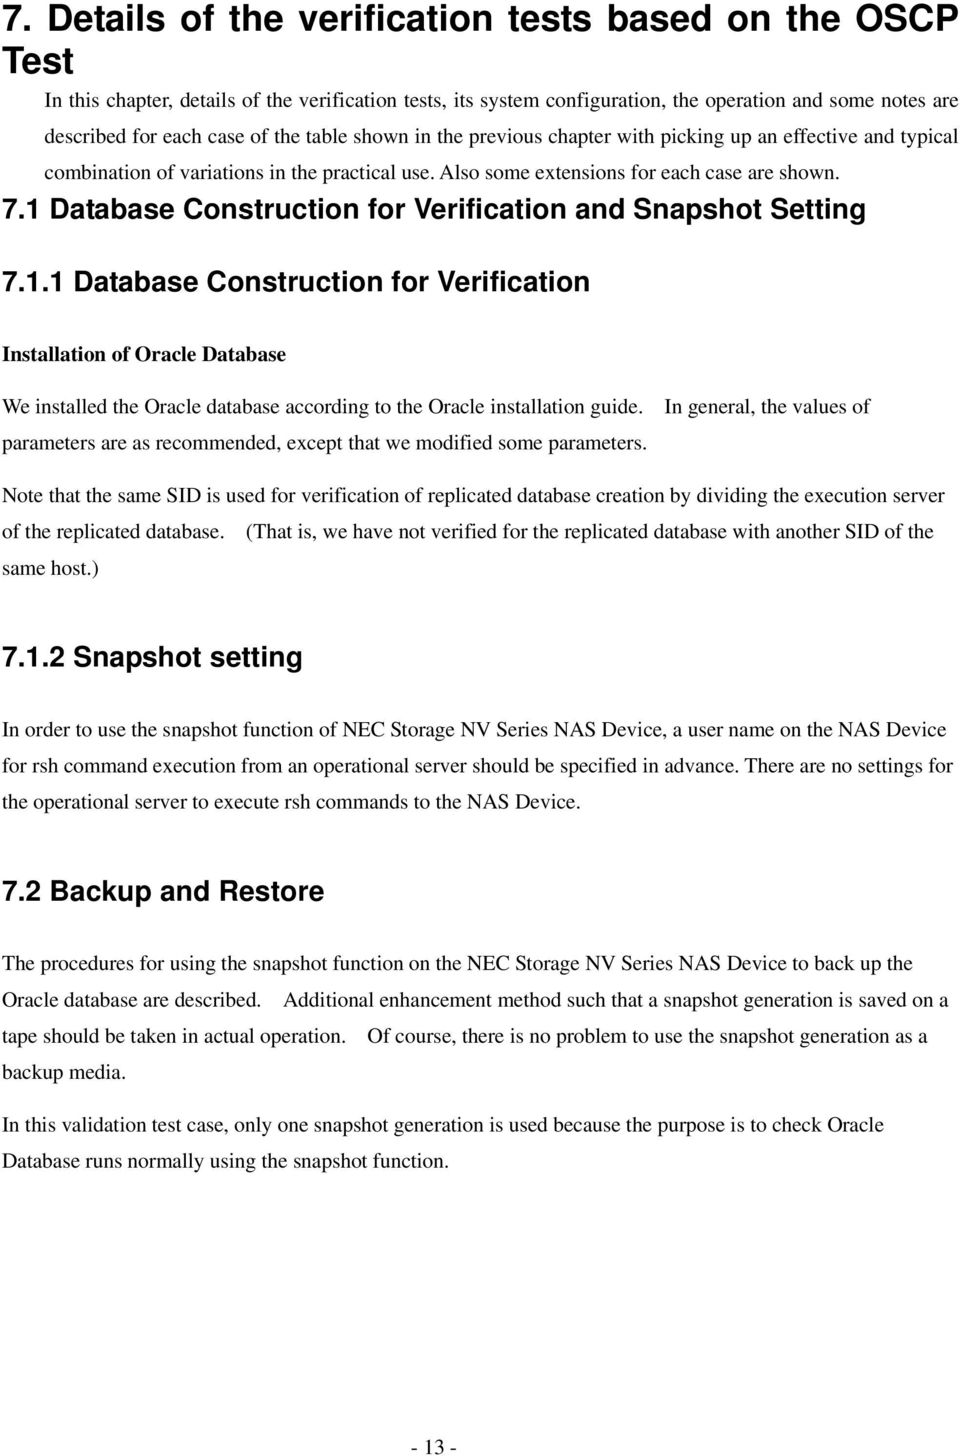 1 Database Construction for Verification and Snapshot Setting 7.1.1 Database Construction for Verification Installation of Oracle Database We installed the Oracle database according to the Oracle installation guide.